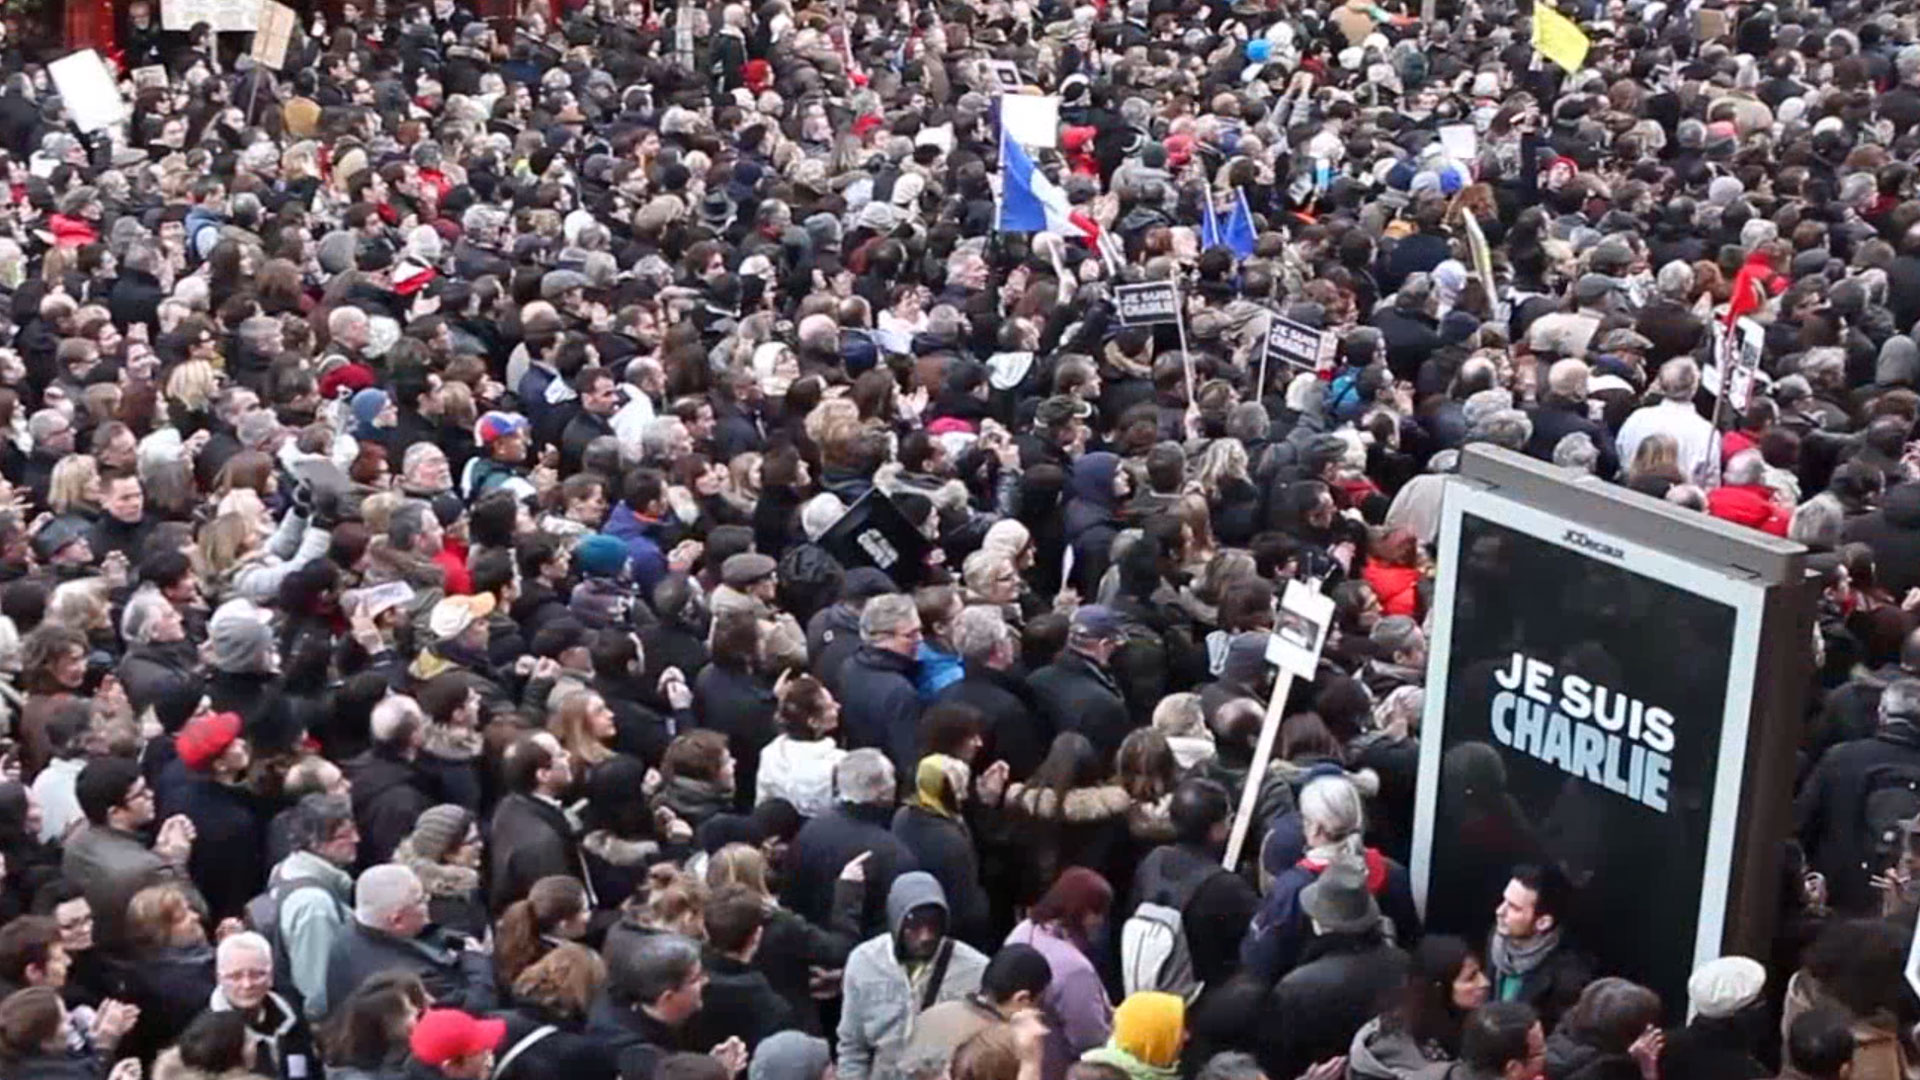 Thousands rally for unity in France